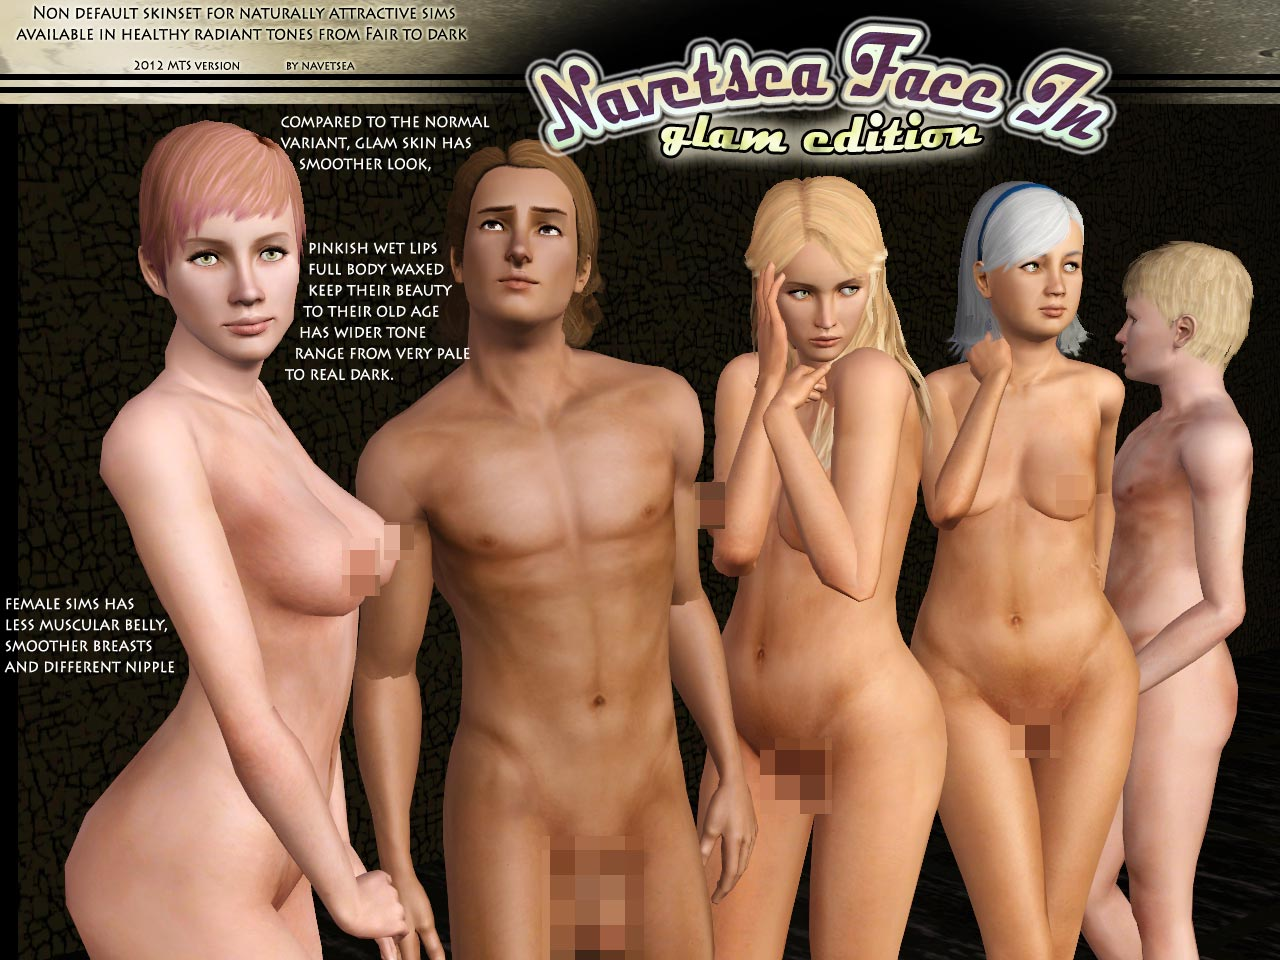 Sims 2 nude body skins adult gallery